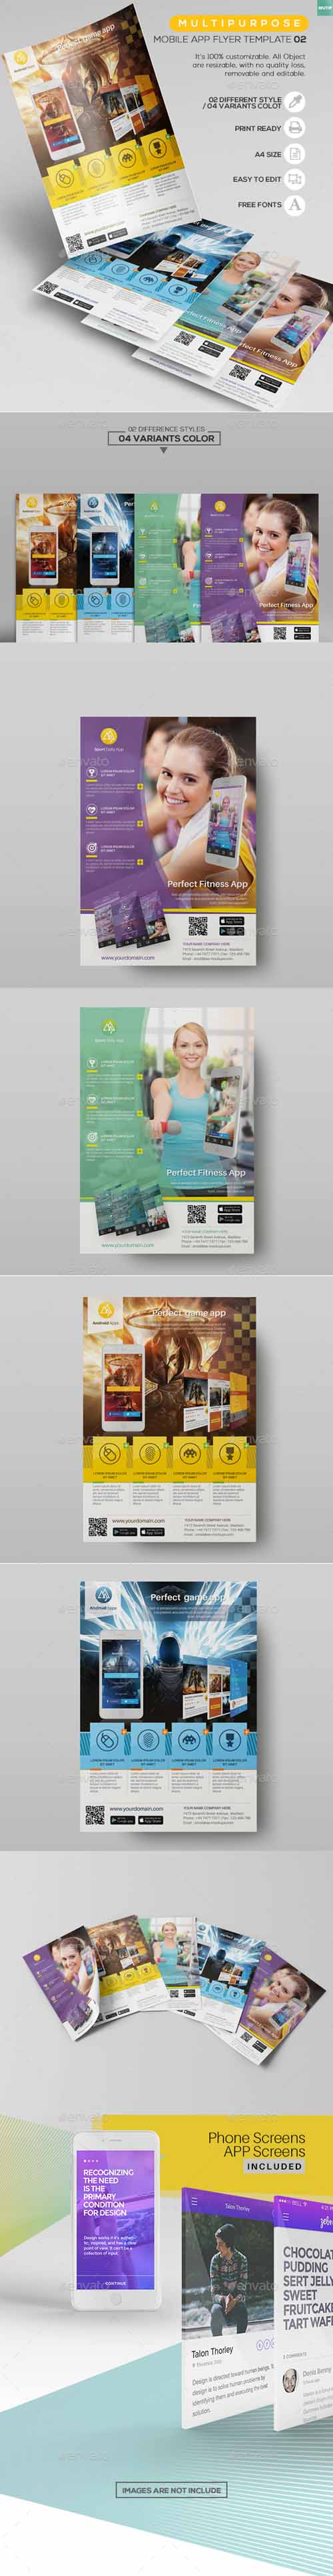 Multipurpose - Mobile App Flyer Template 02 13456337